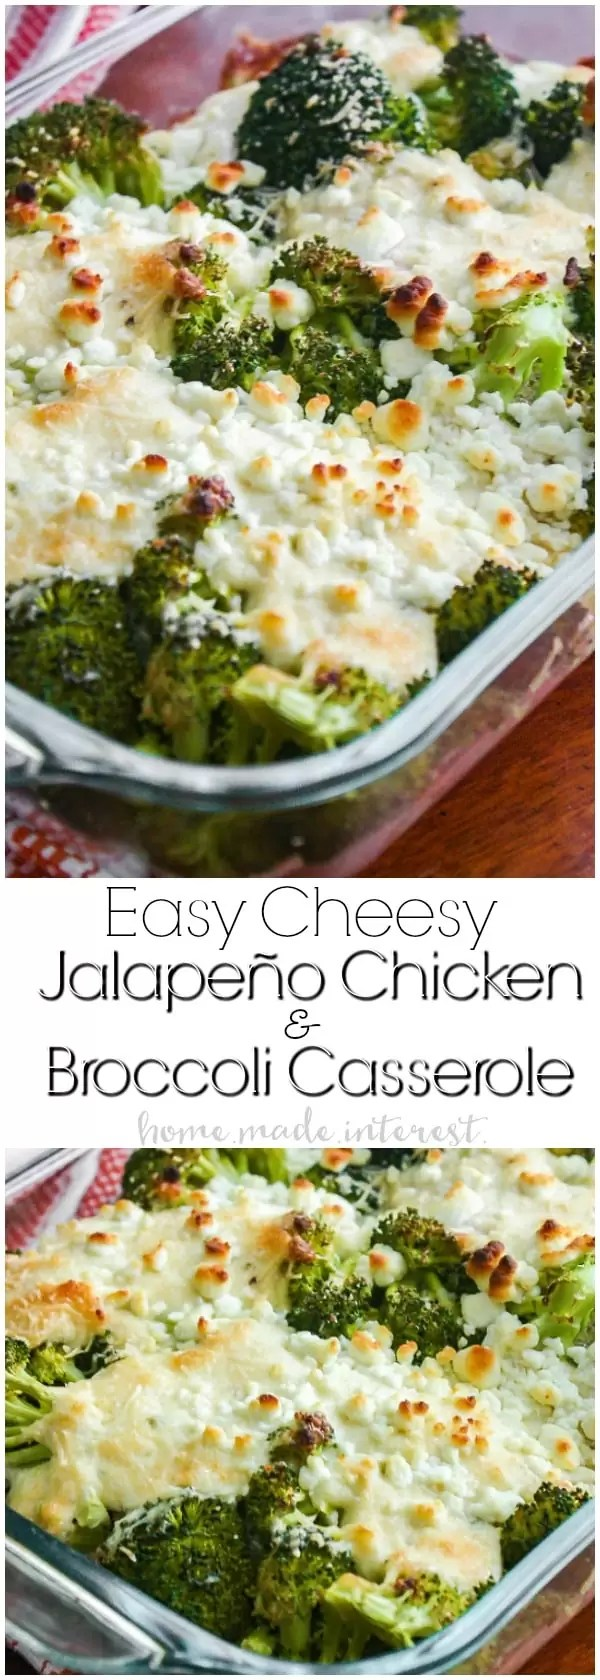 Easy Cheesy Jalapeno Chicken and Broccoli Casserole | This cheesy jalapeno chicken and broccoli casserole is an easy low carb dinner recipe that is packed full of flavor. If you are looking for a low carb recipe idea you'll love this low carb casserole. It is a great easy weeknight dinner recipe that the whole family will love.